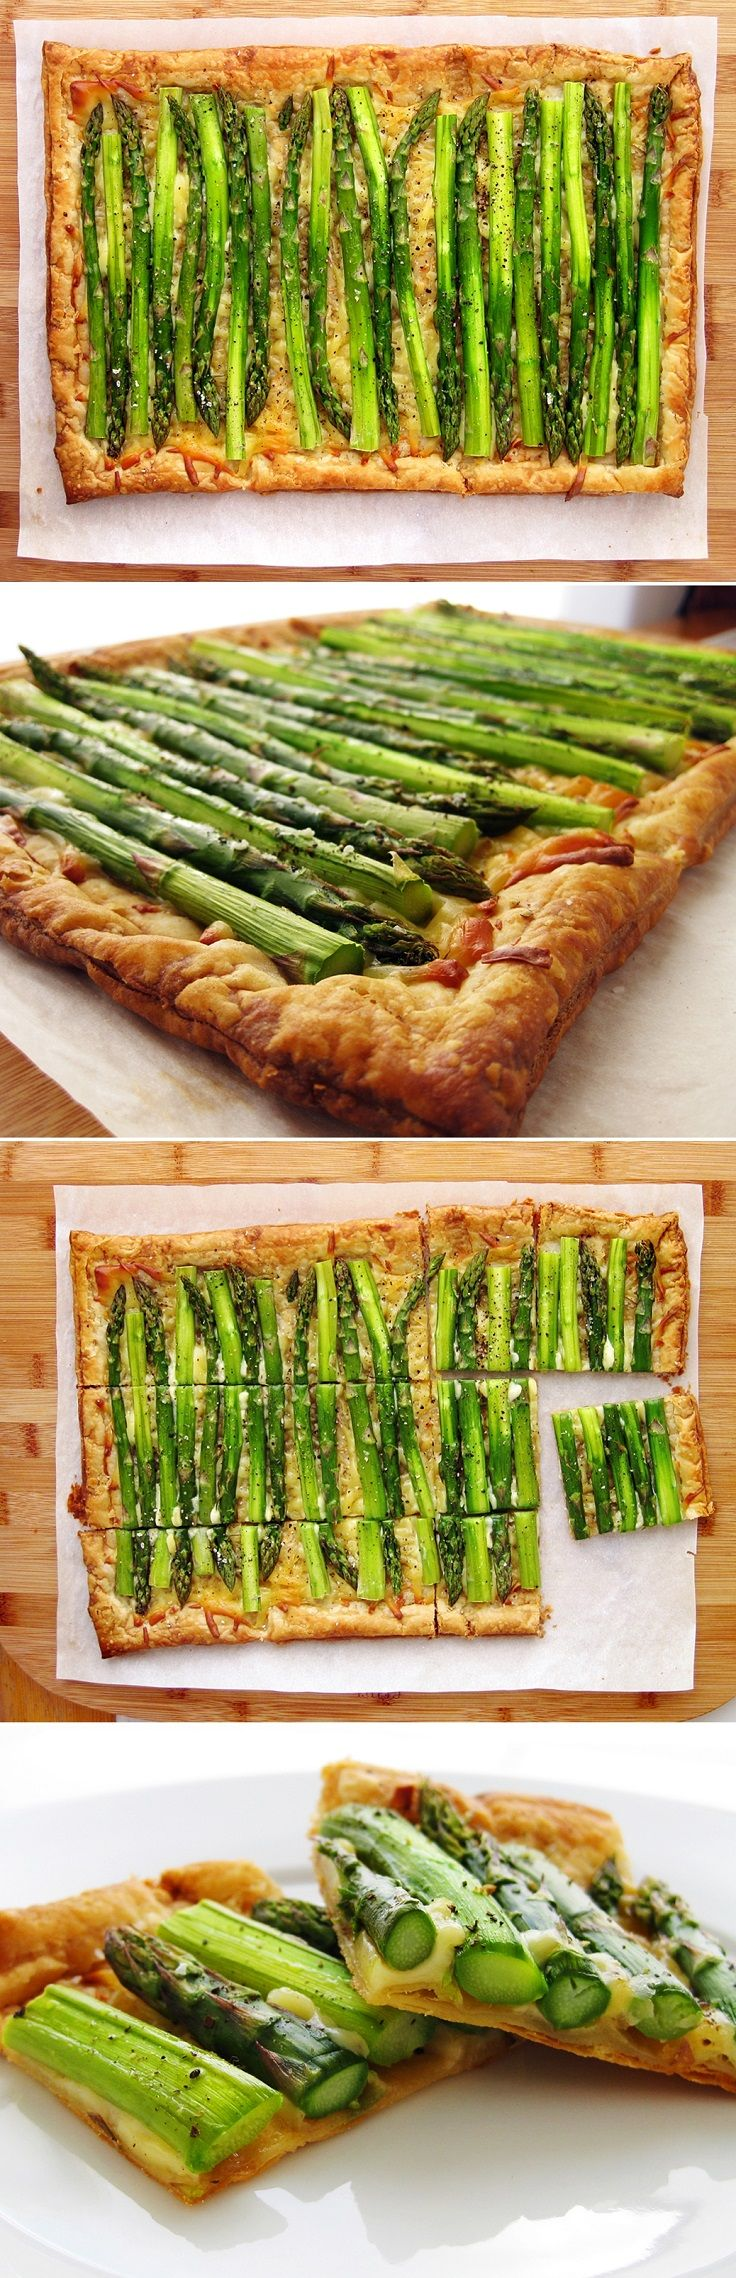 Asparagus Tart With Gruyere Recipes — Dishmaps